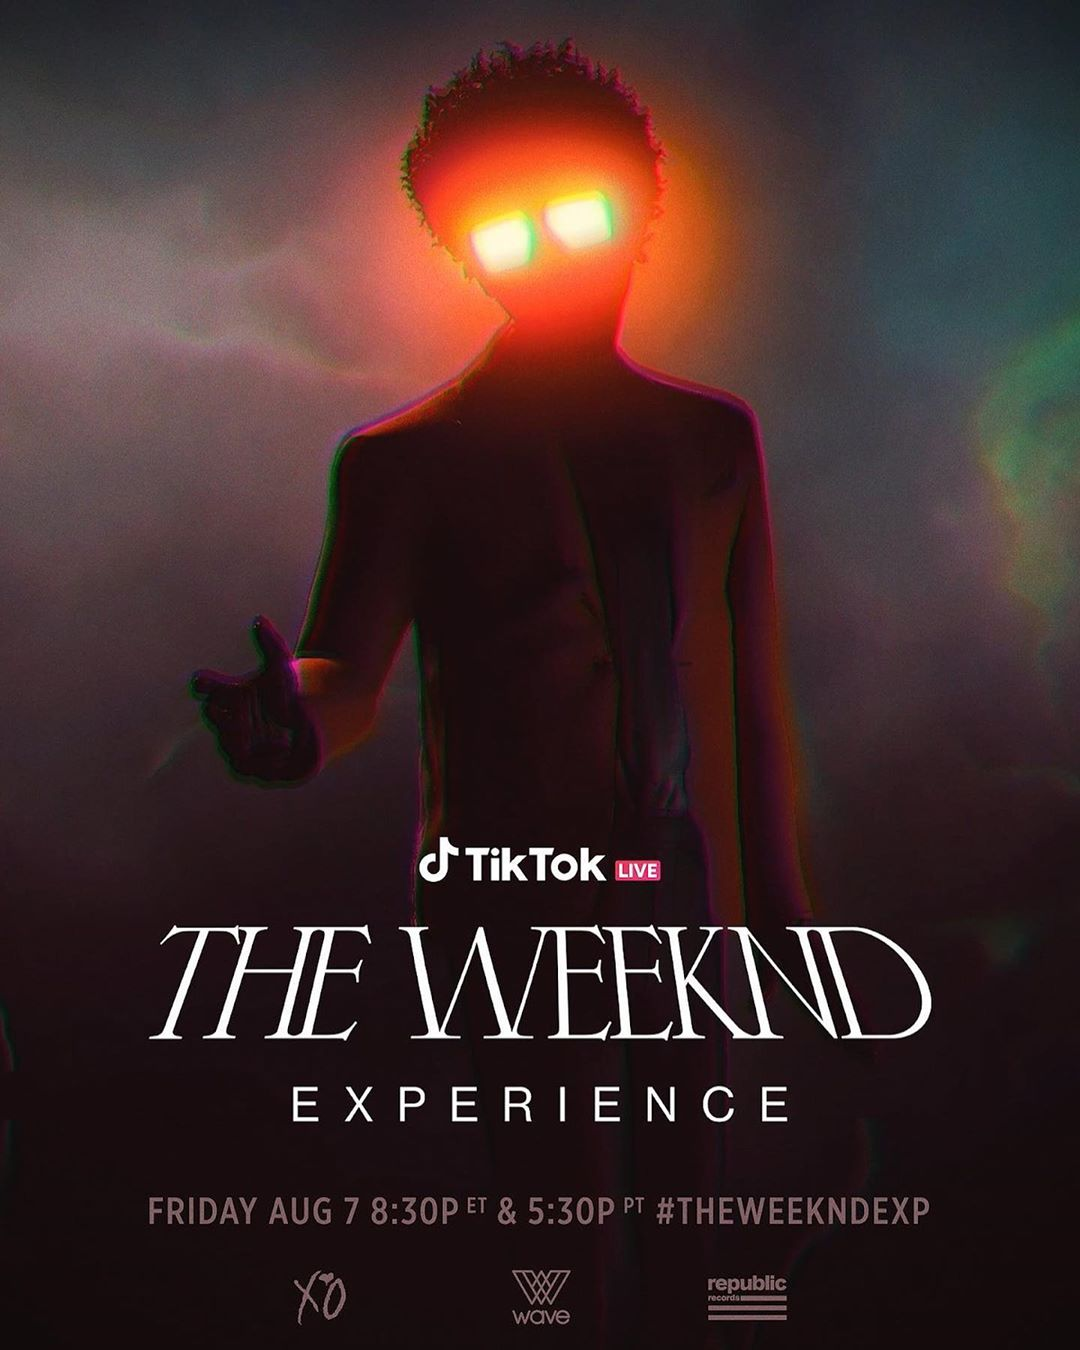 The Weeknd проведет концерт в TikTok